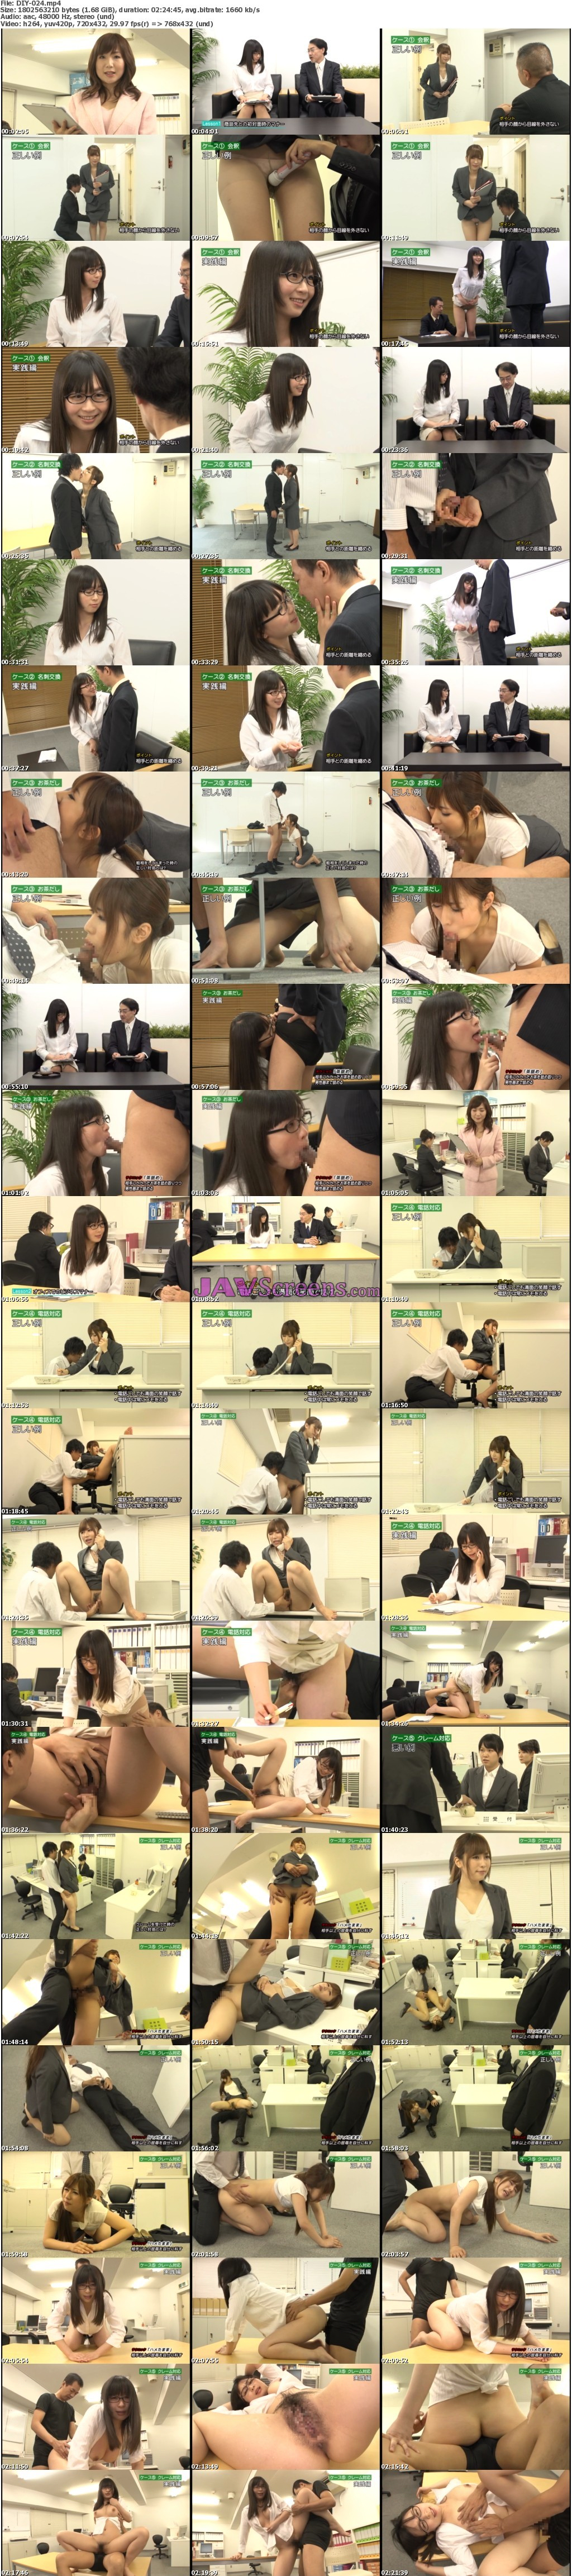 DIY-024.jpg - JAV Screenshot